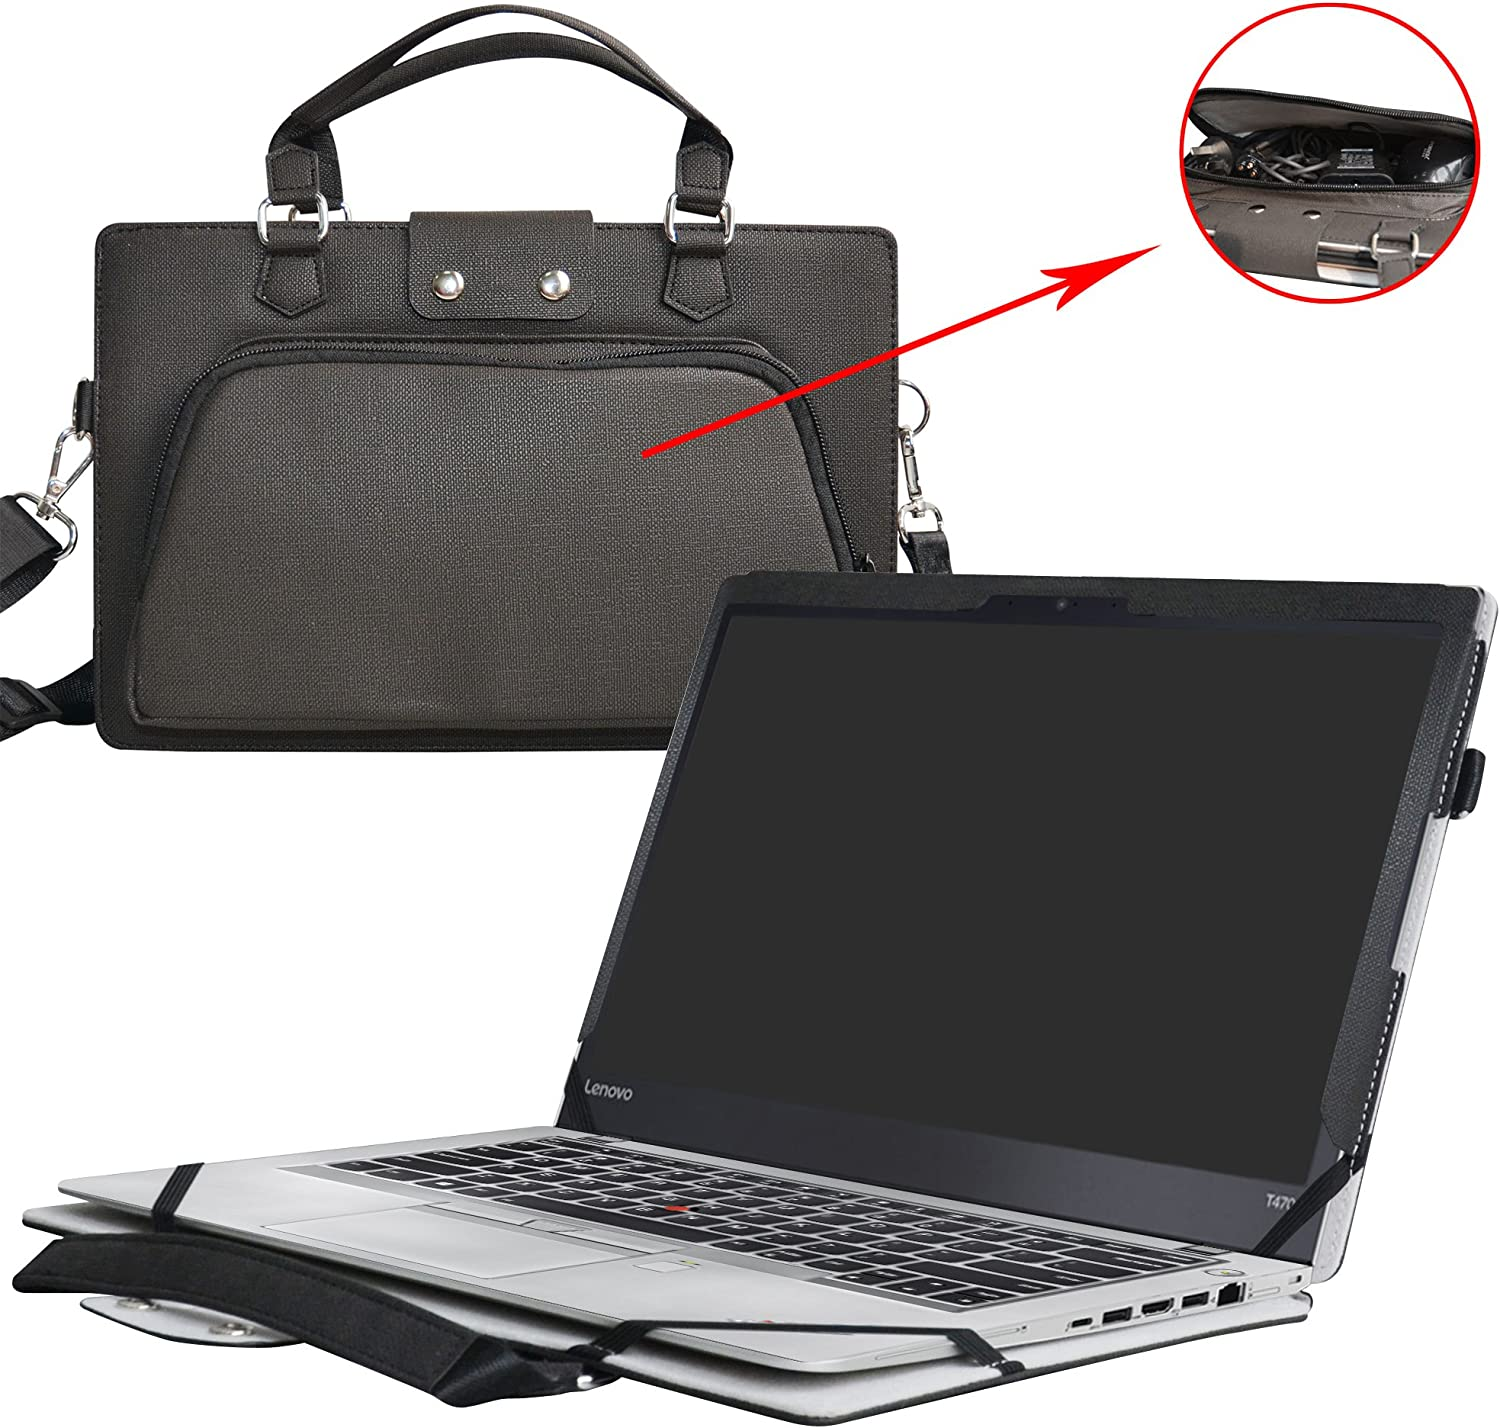 """ThinkPad T470s Case,2 in 1 Accurately Designed Protective PU Leather Cover + Portable Carrying Bag For 14"""" Lenovo ThinkPad T470s Series Laptop(Not fit ThinkPad T470/T470p/T460),Black"""